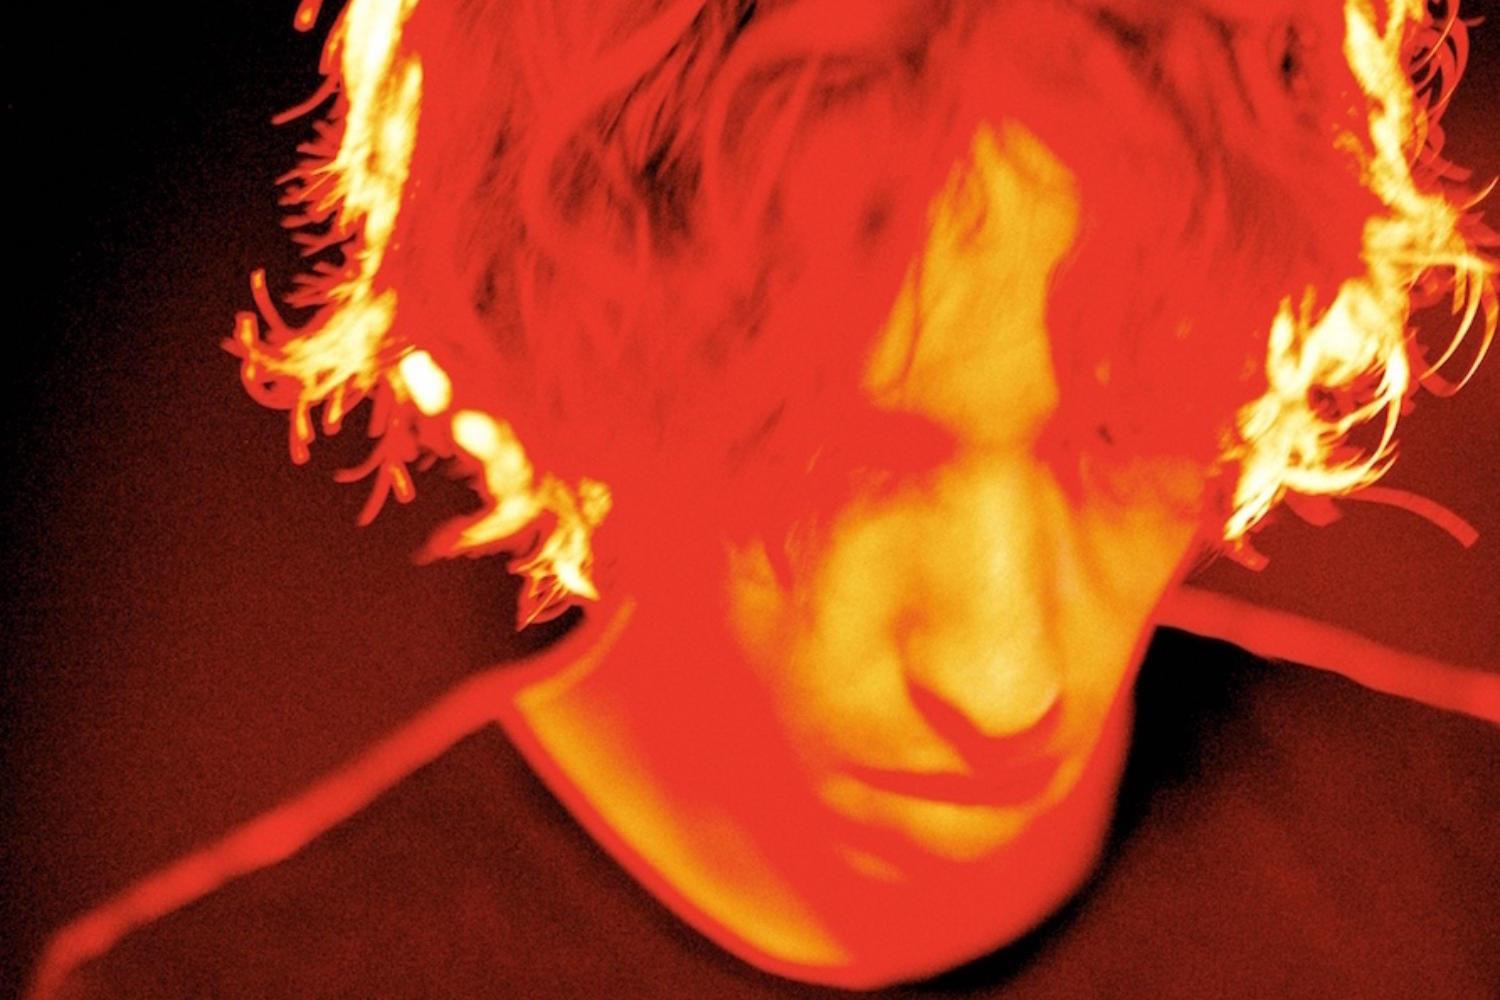 Daniel Avery announces new album 'Song For Alpha', shares 'Slow Fade' EP